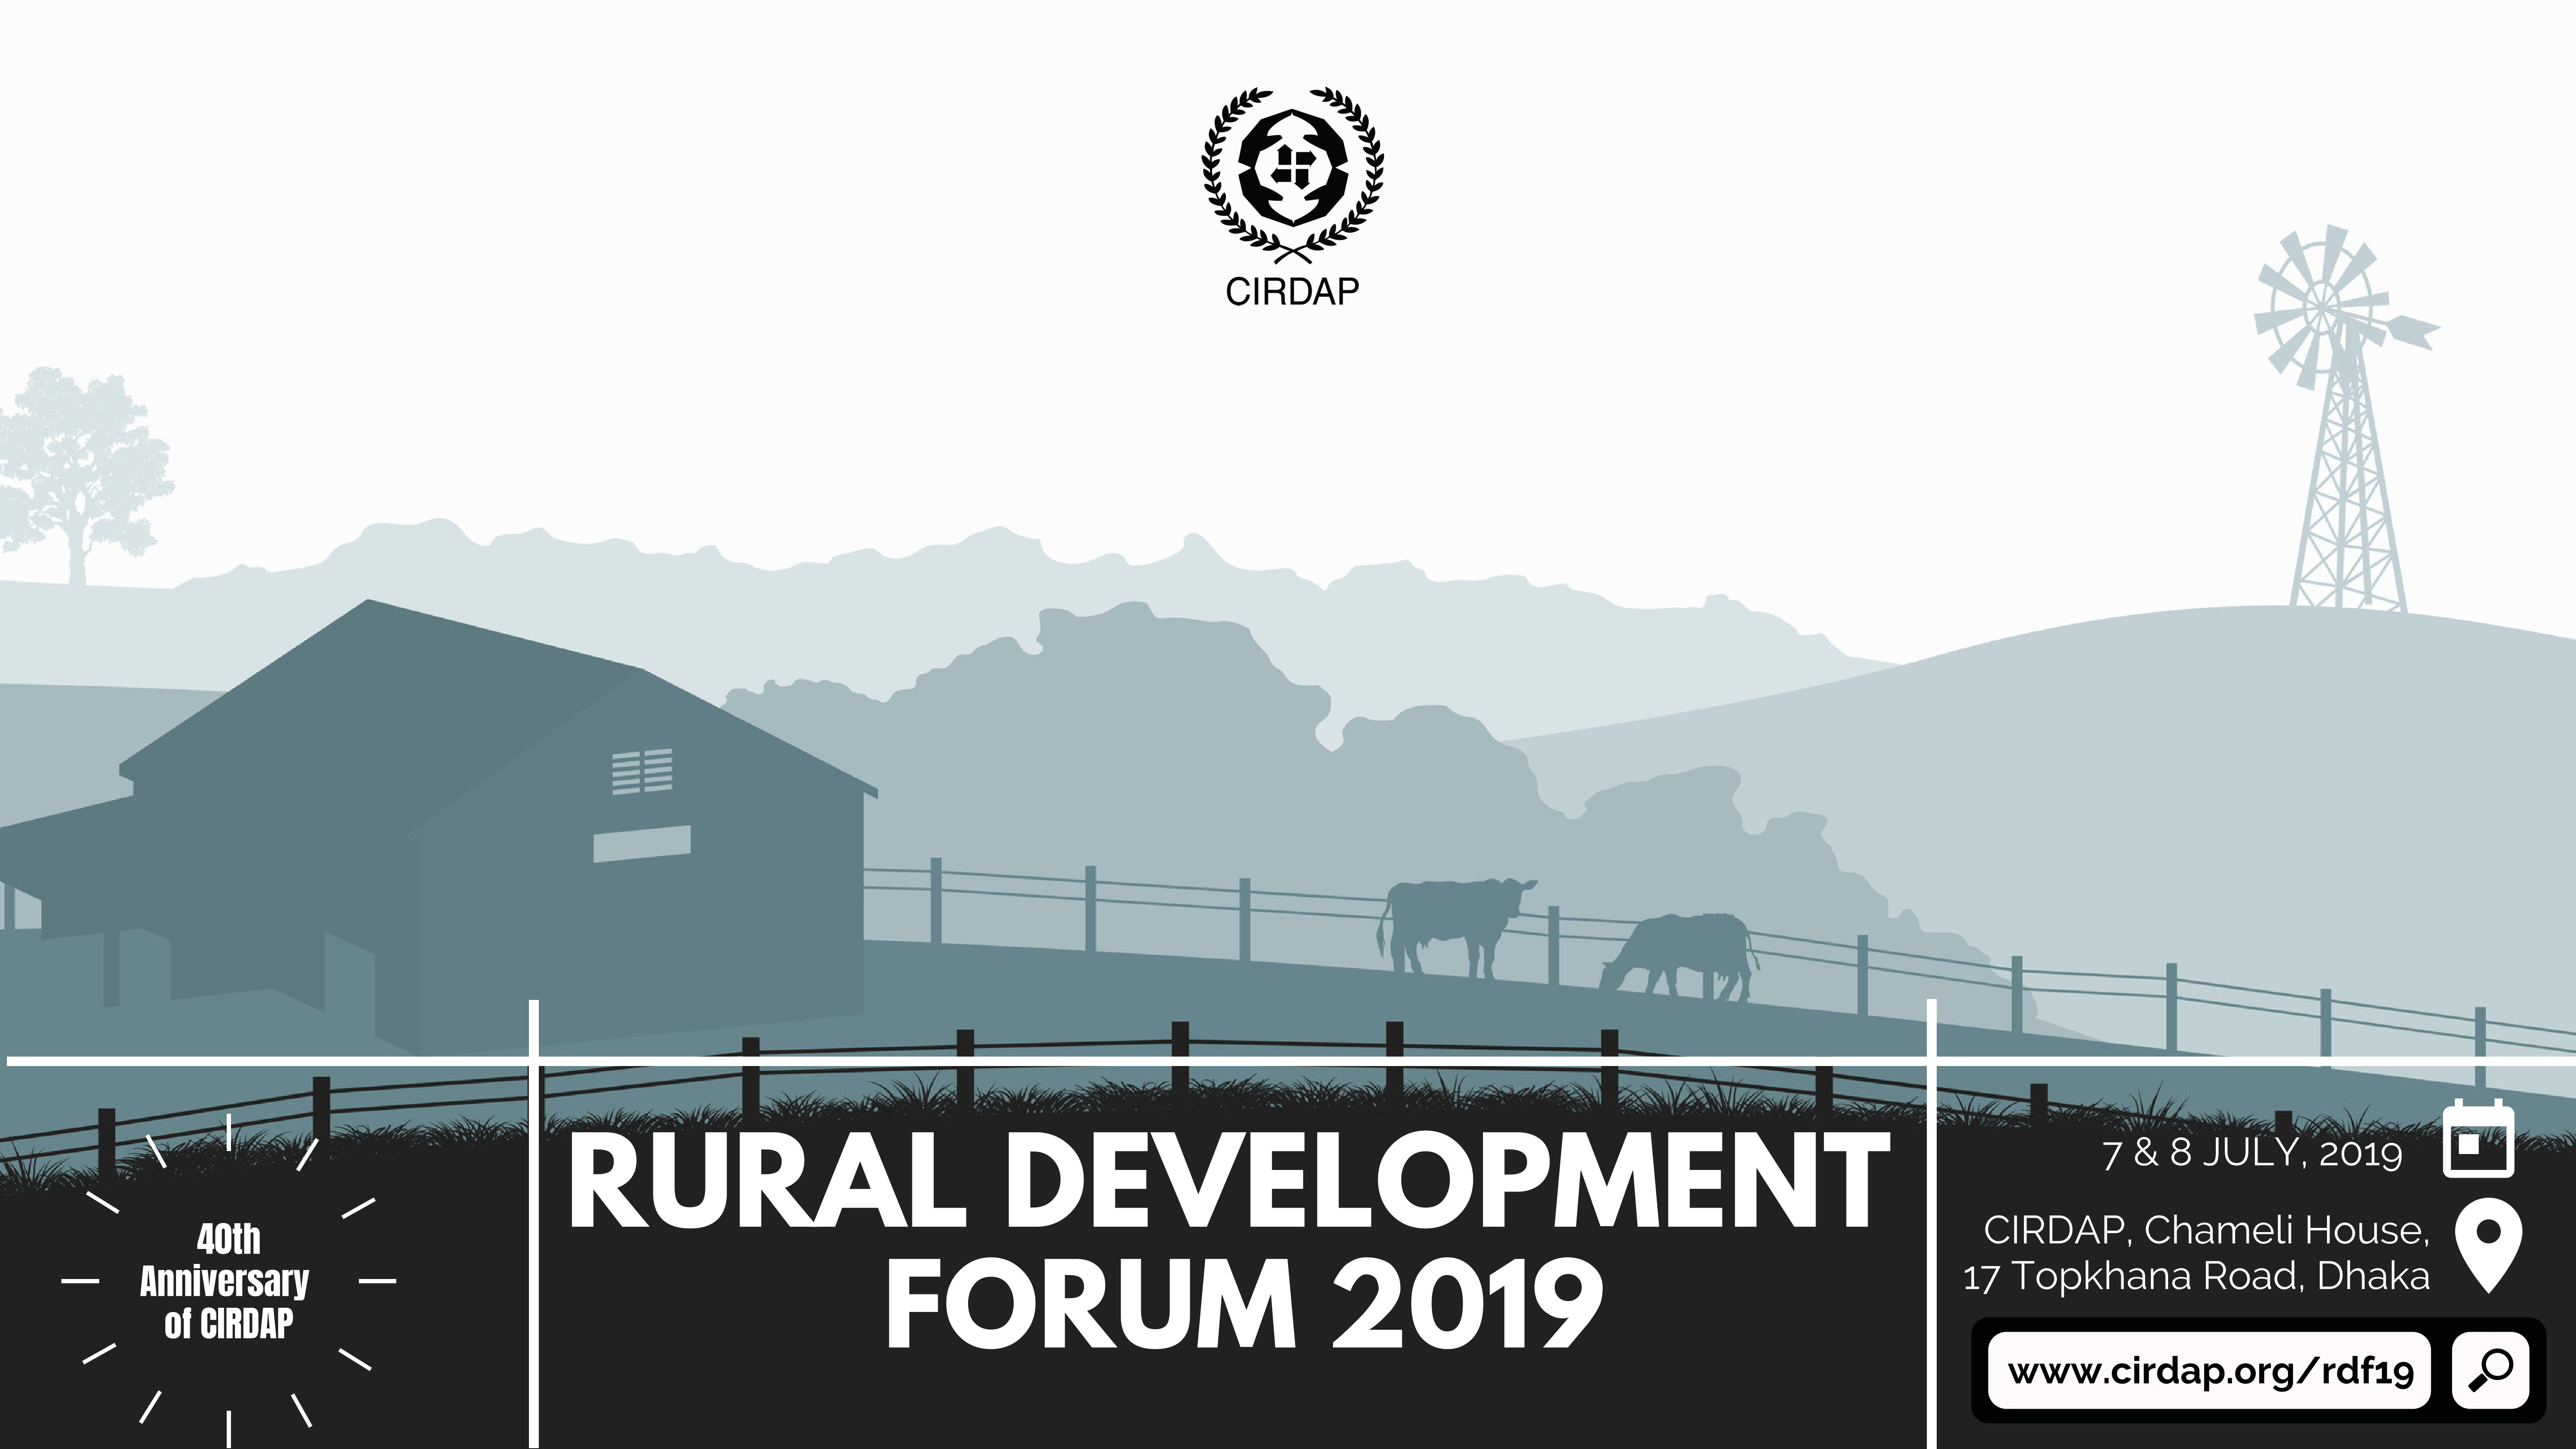 Rural Development Forum 2019.